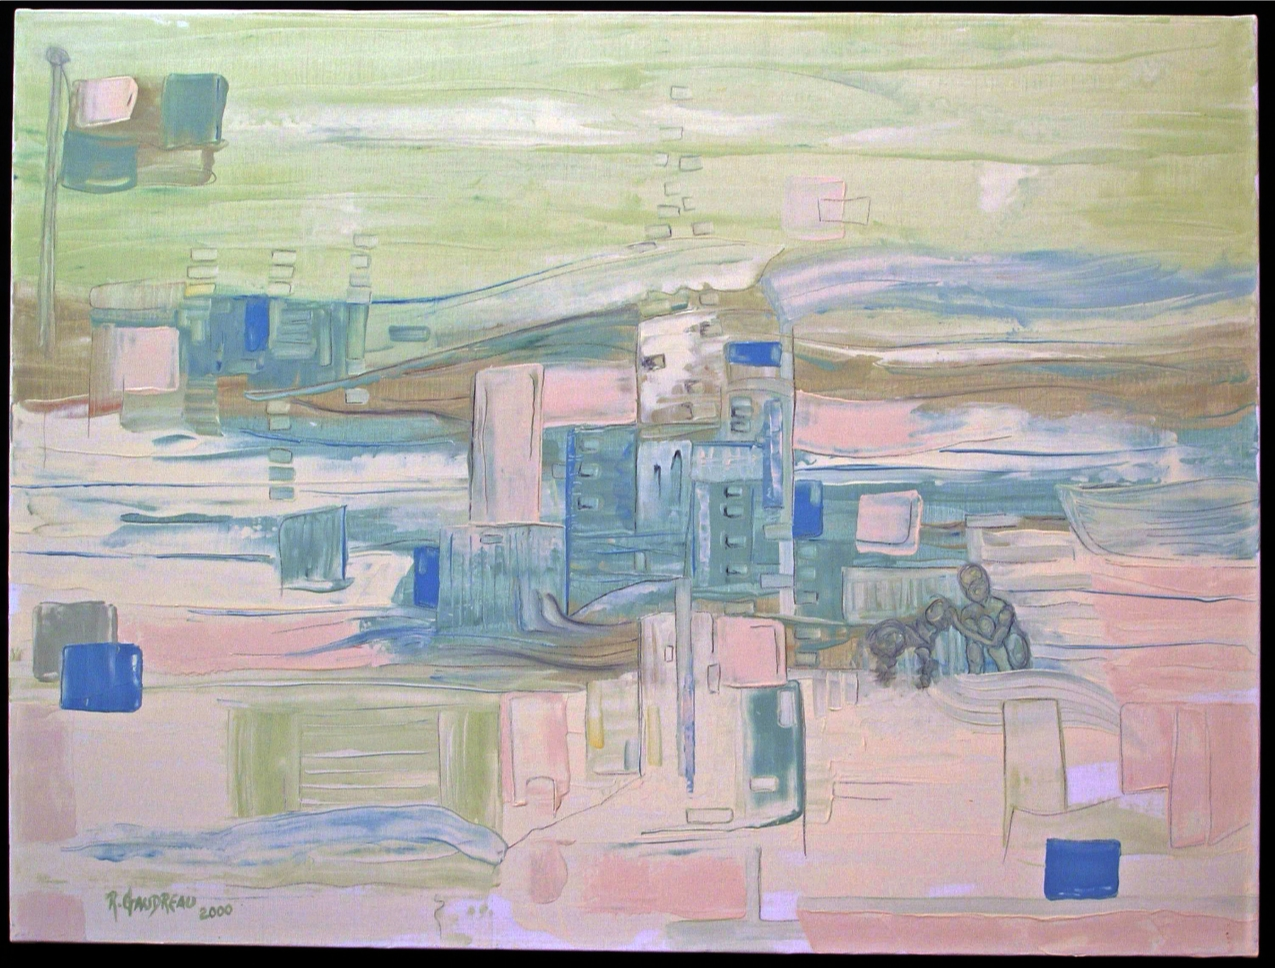 Not to be forgotten   2000 oil on canvas 30 x 40 inches